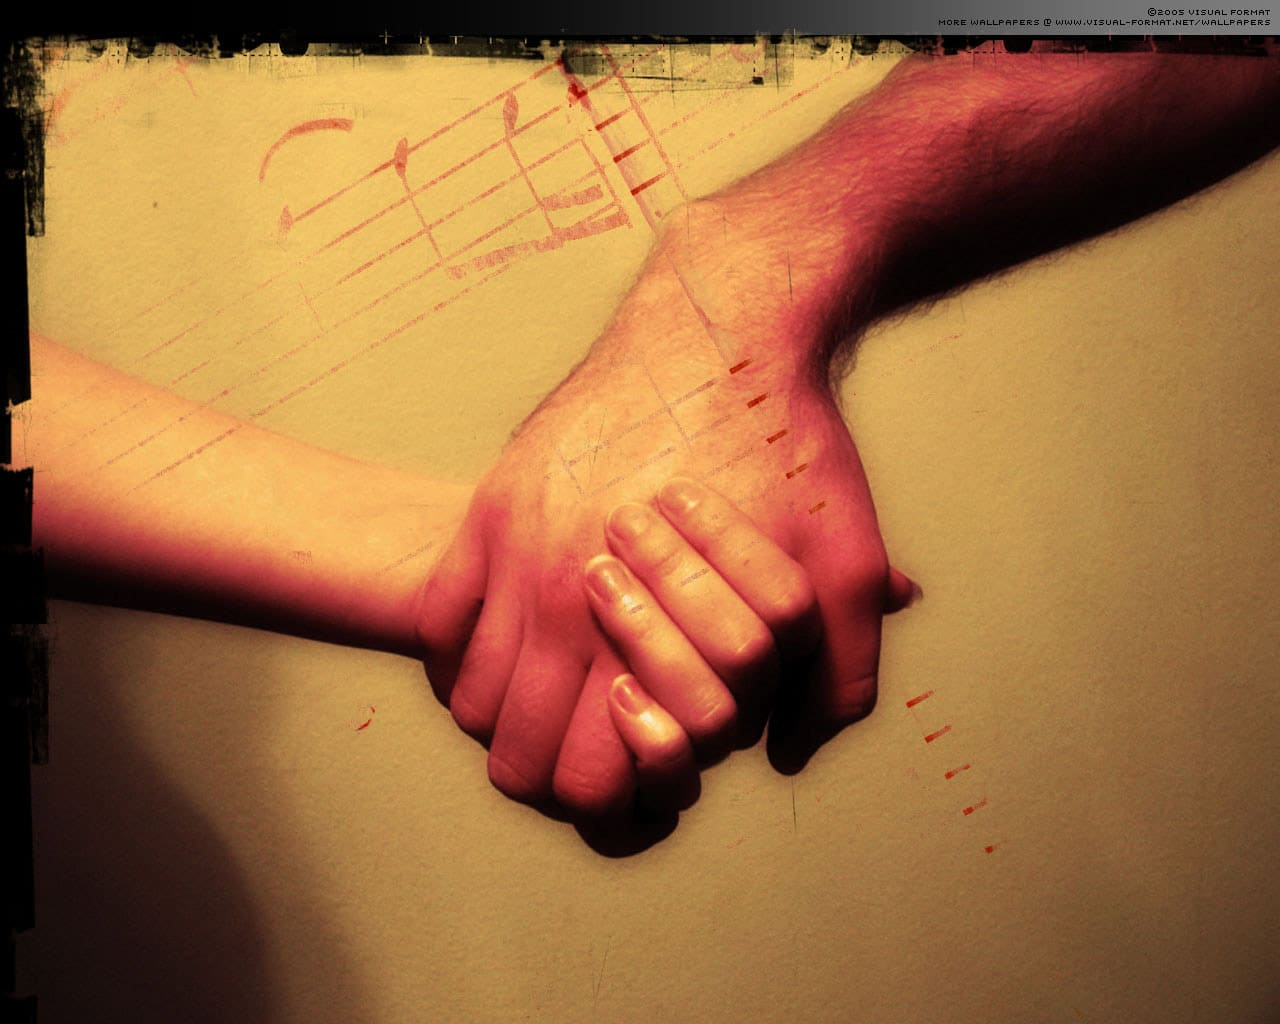 Beautiful Wallpaper Friendship Finger - holding-hands-photography-535693_1280_1024  Pic_827153 .jpg